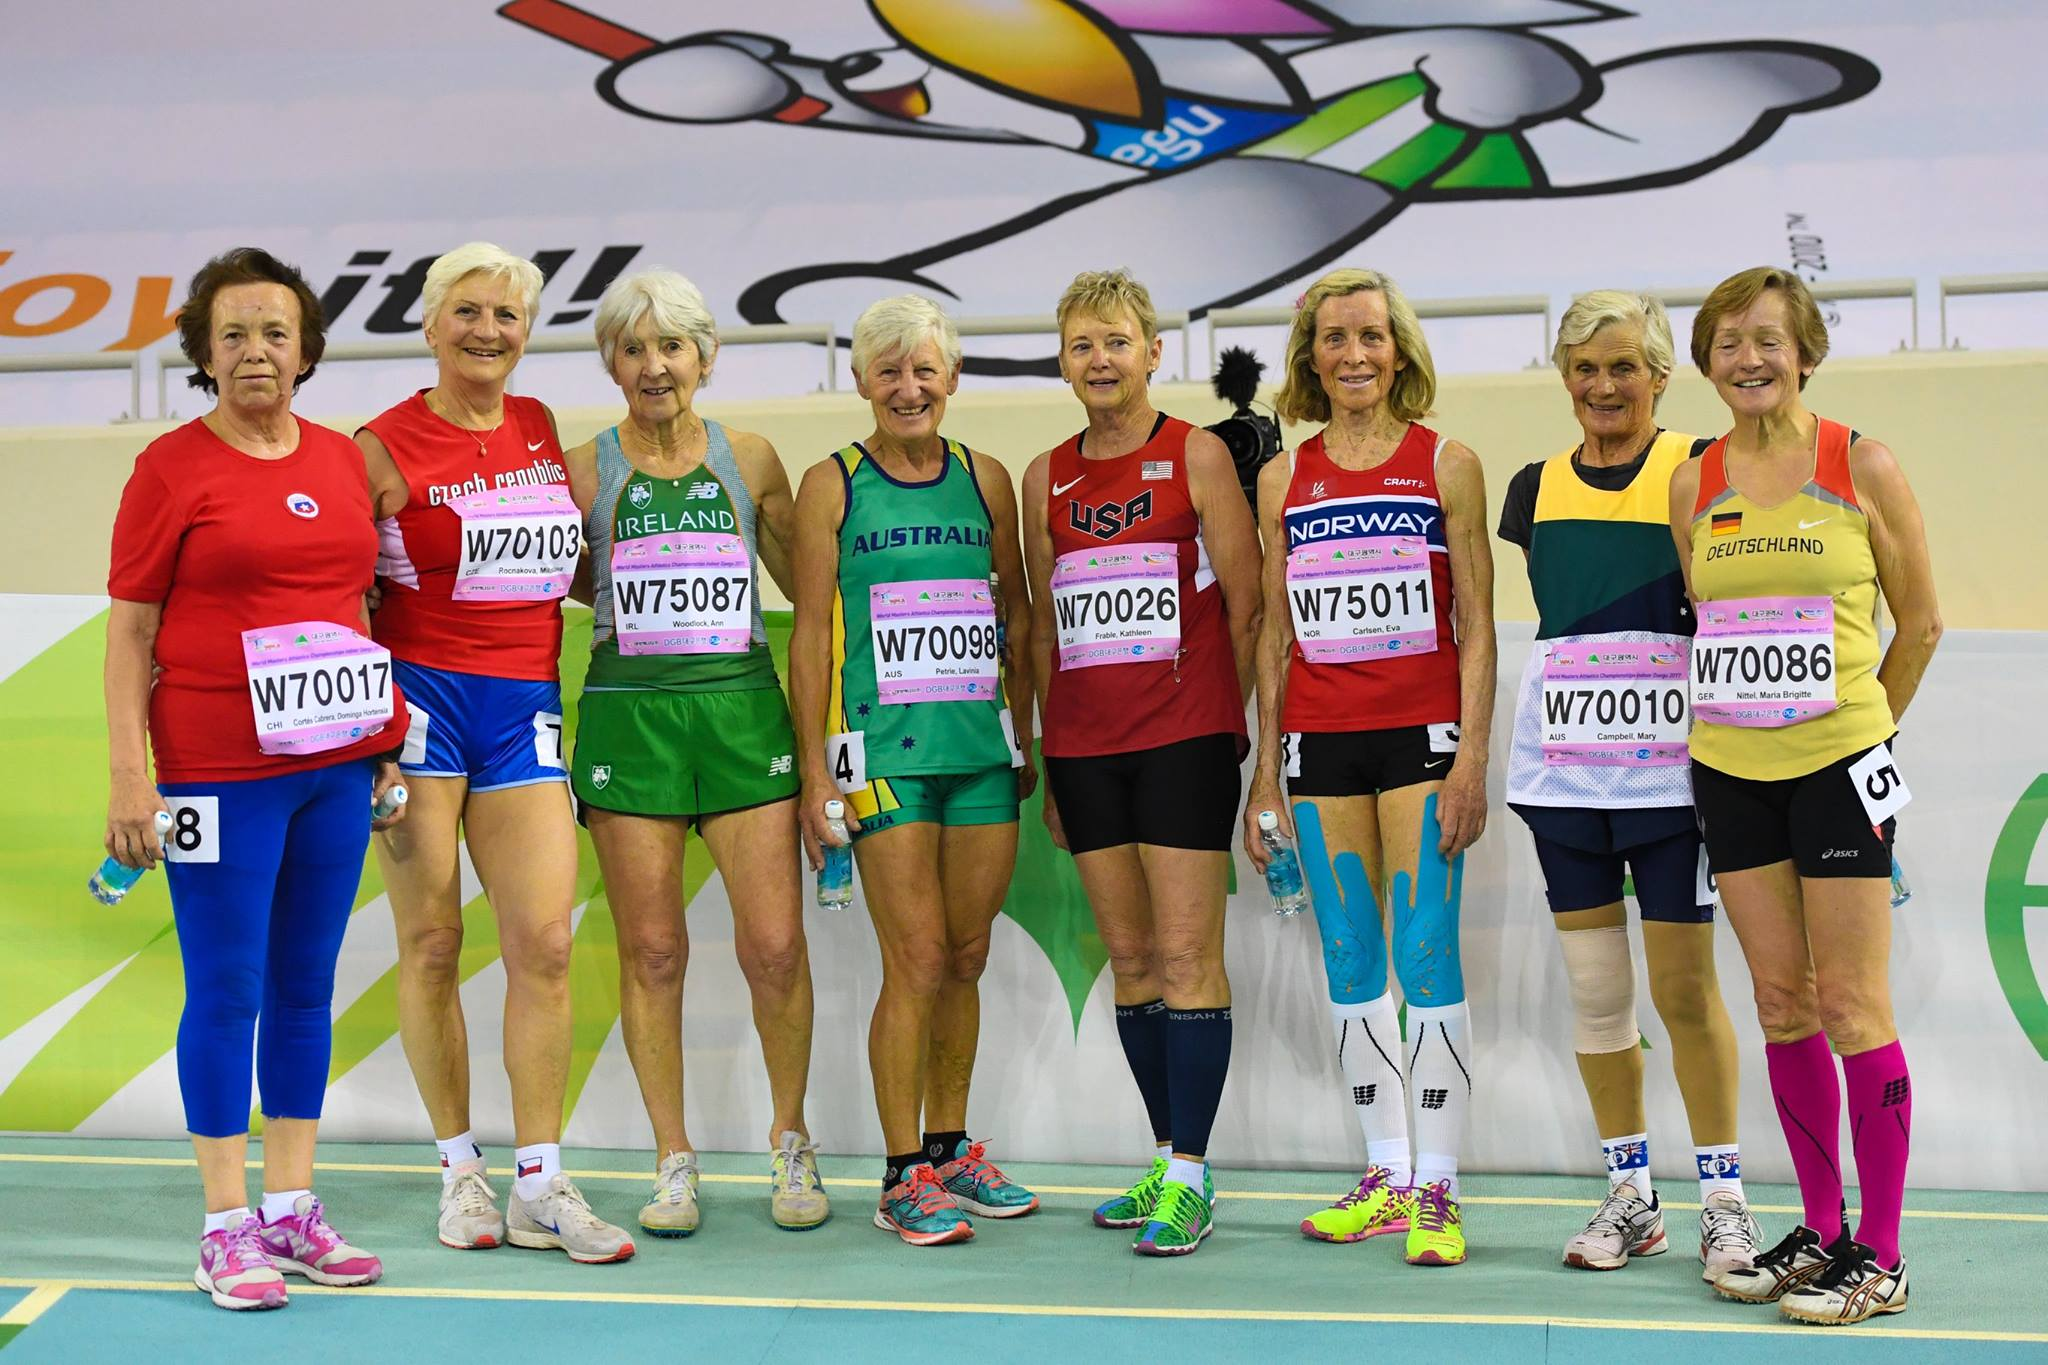 kathy-frable-2017-world-masters-athletics-daegu-group-shot-photo-by-rob-davellar